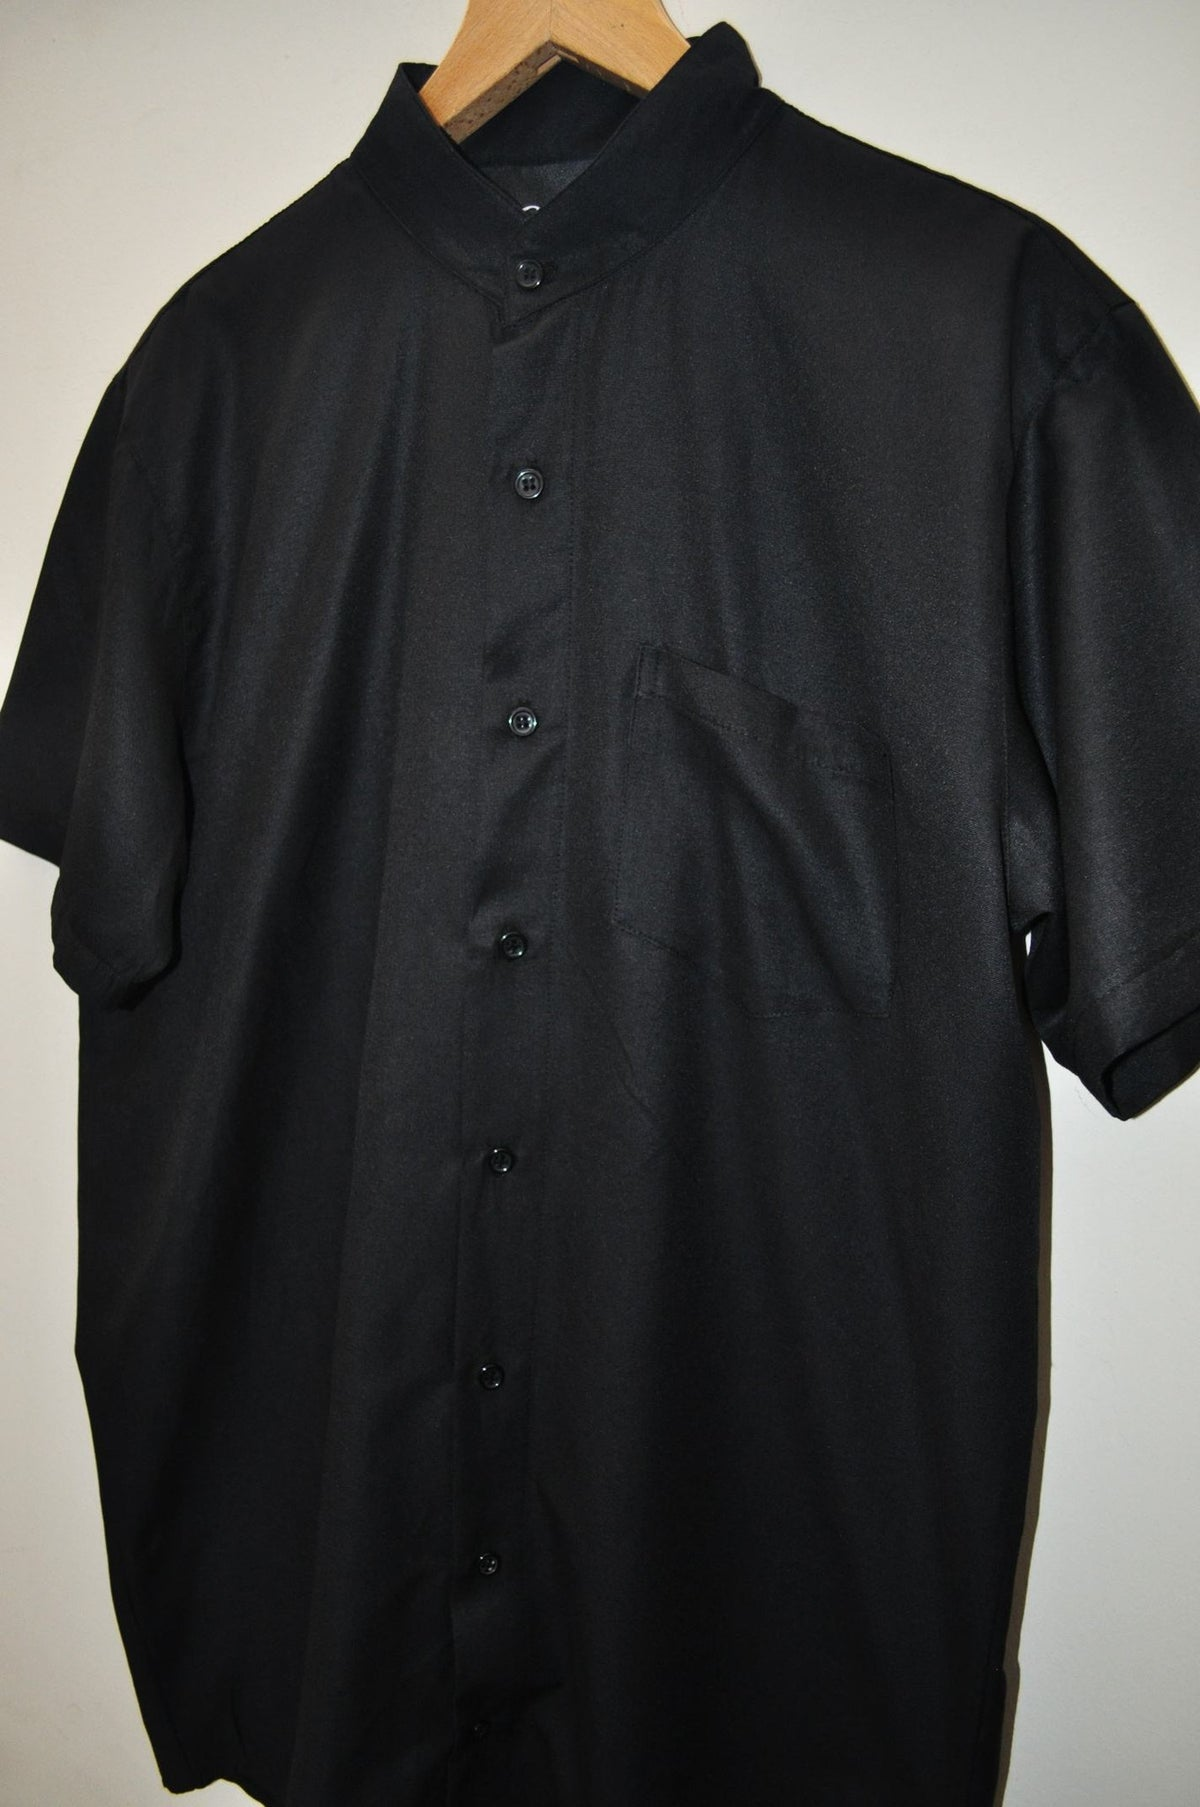 Men's Overlong Oxford Cotton Short Sleeve KW Style Shirt